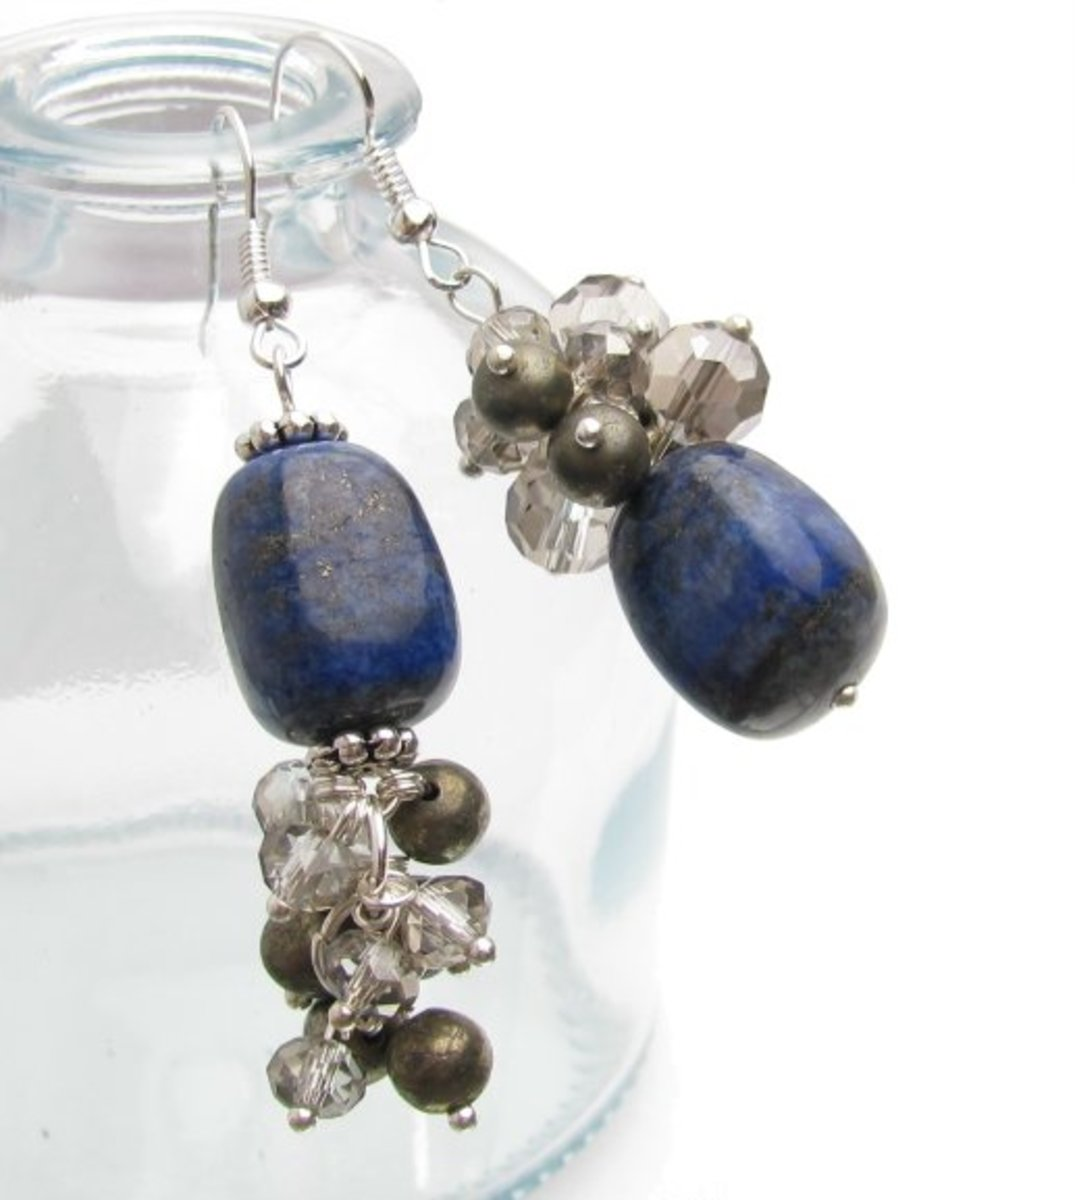 How to Make Beaded Cluster Earrings - Two Ways